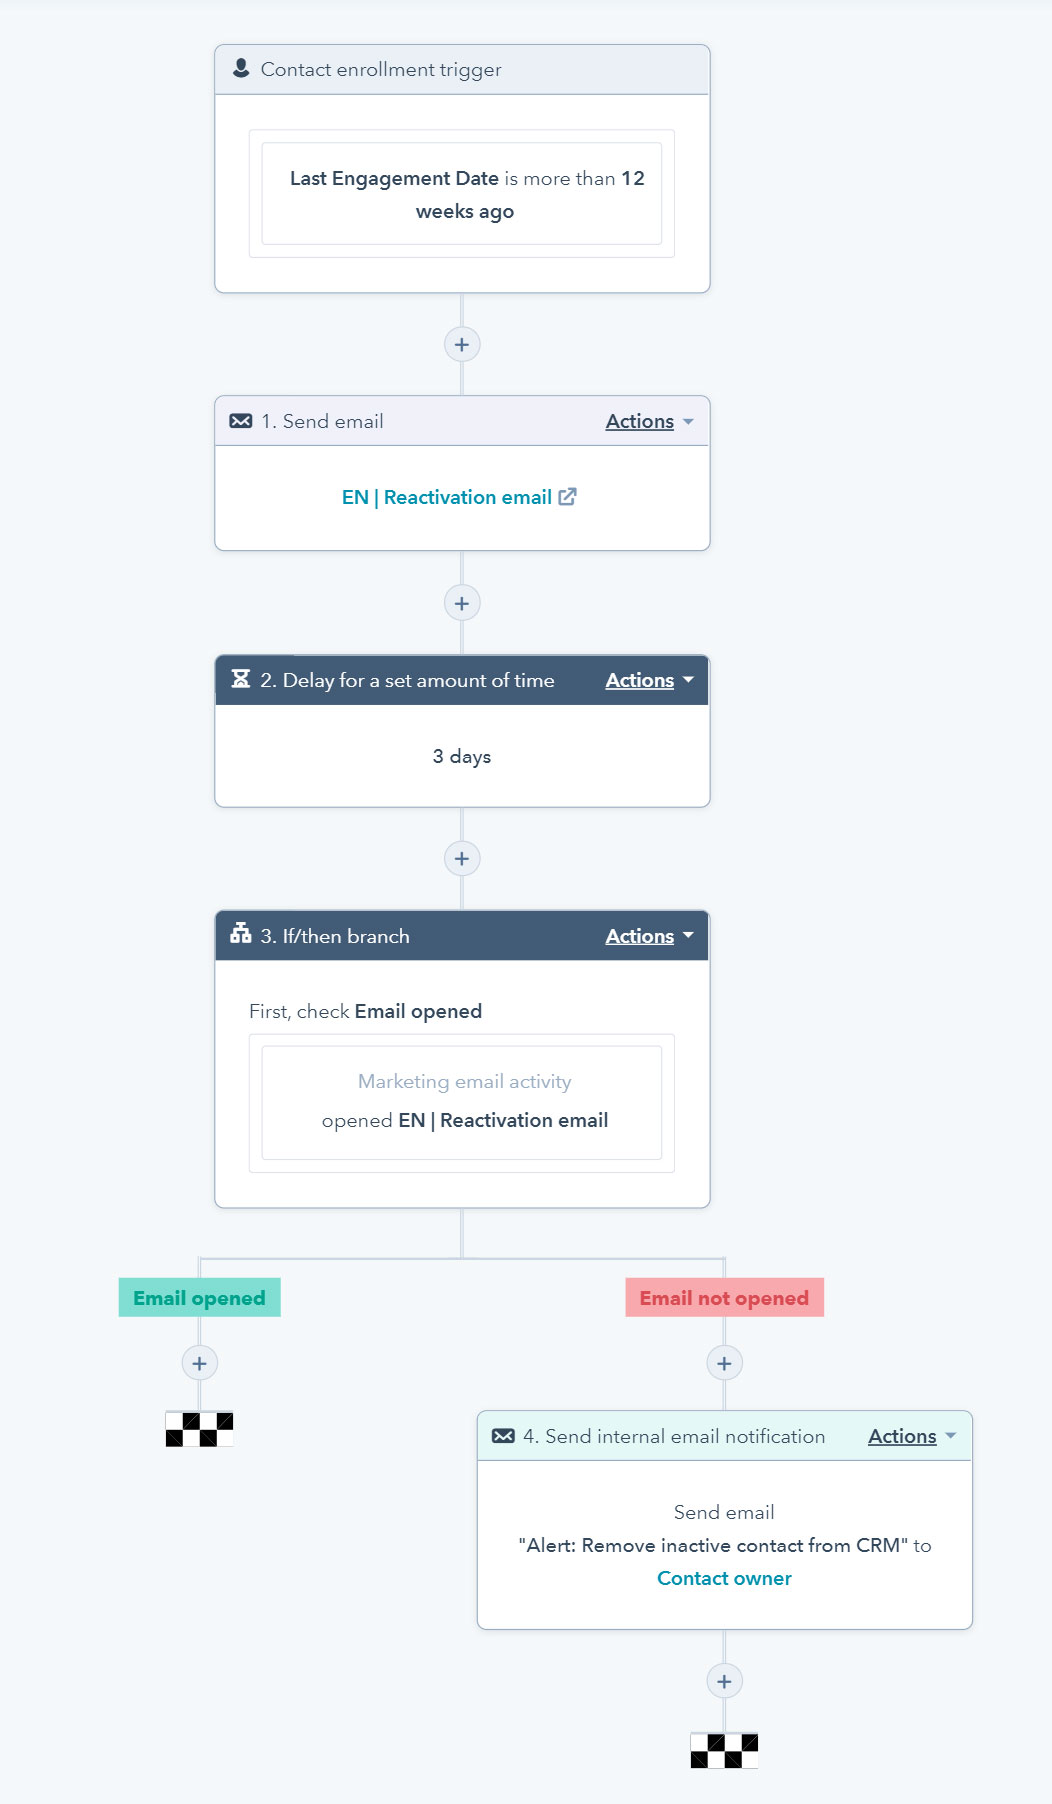 Zooma-reactivation-workflow-with-alert